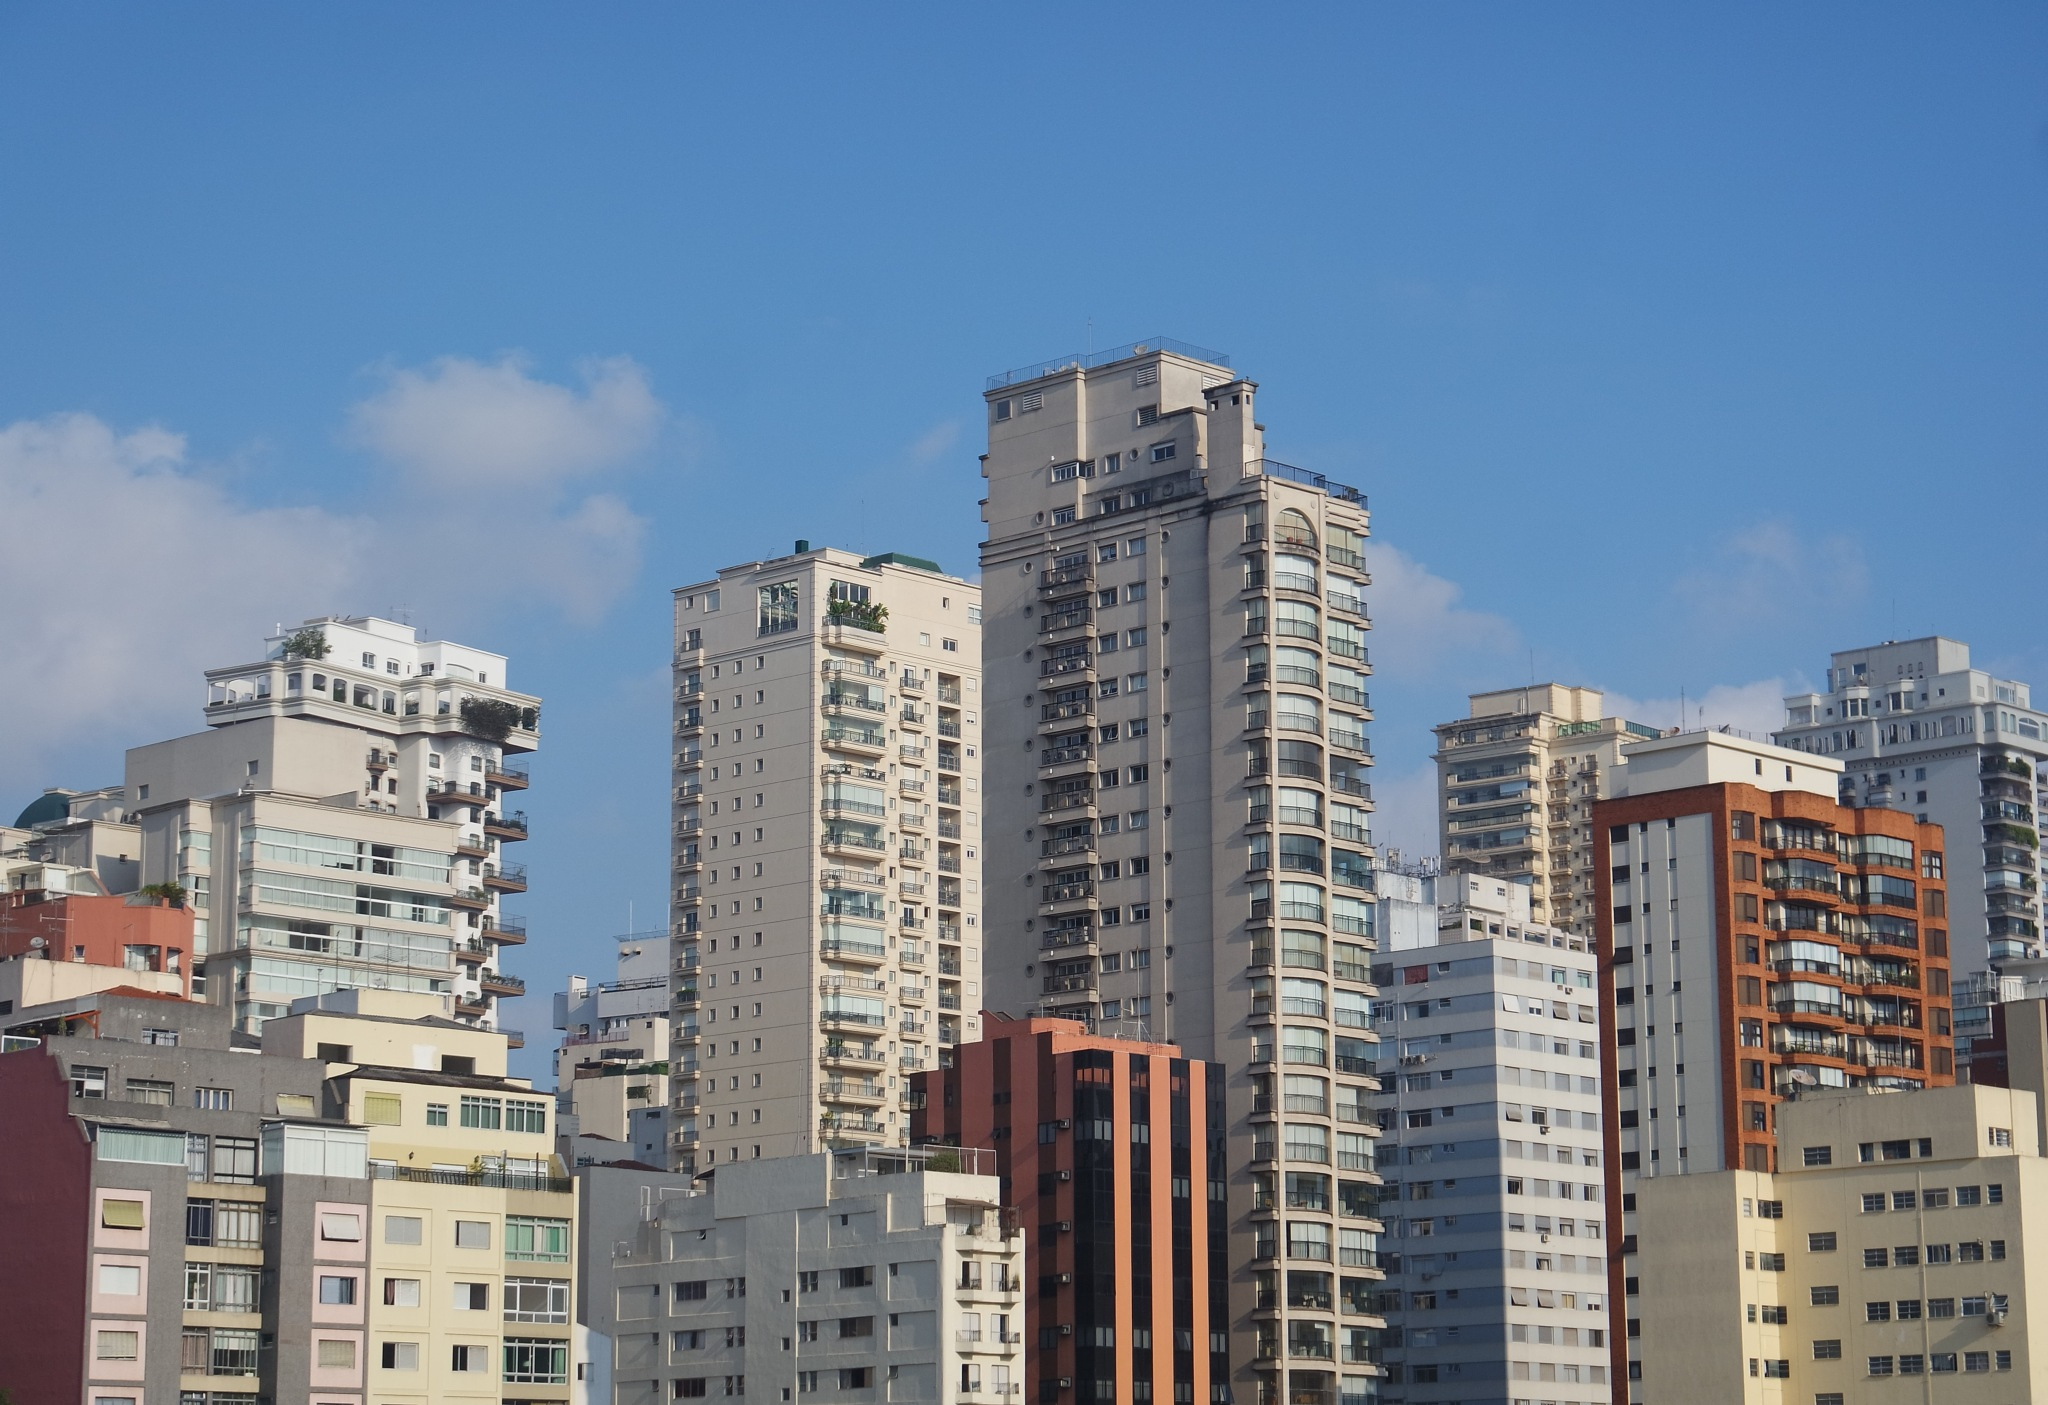 My City by Ina Henrique Dias